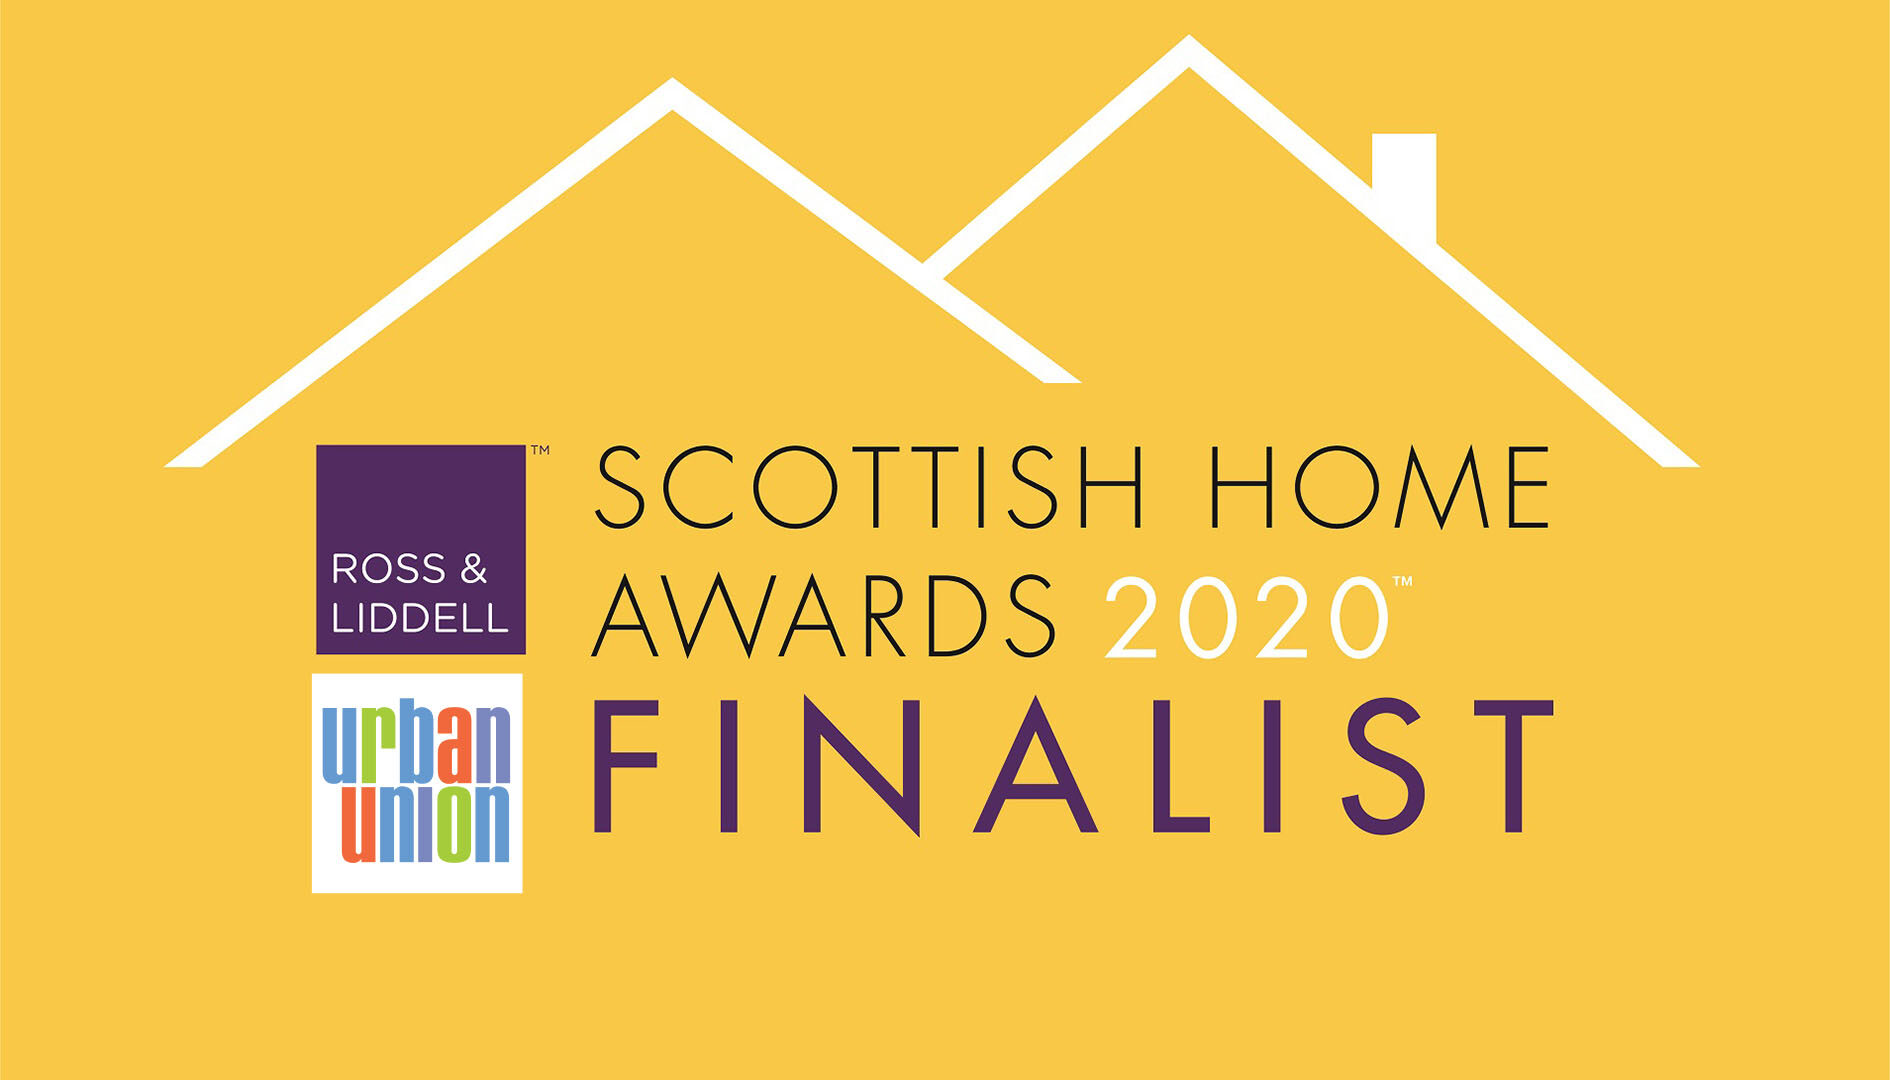 Finalists in The Scottish Home Awards 2020